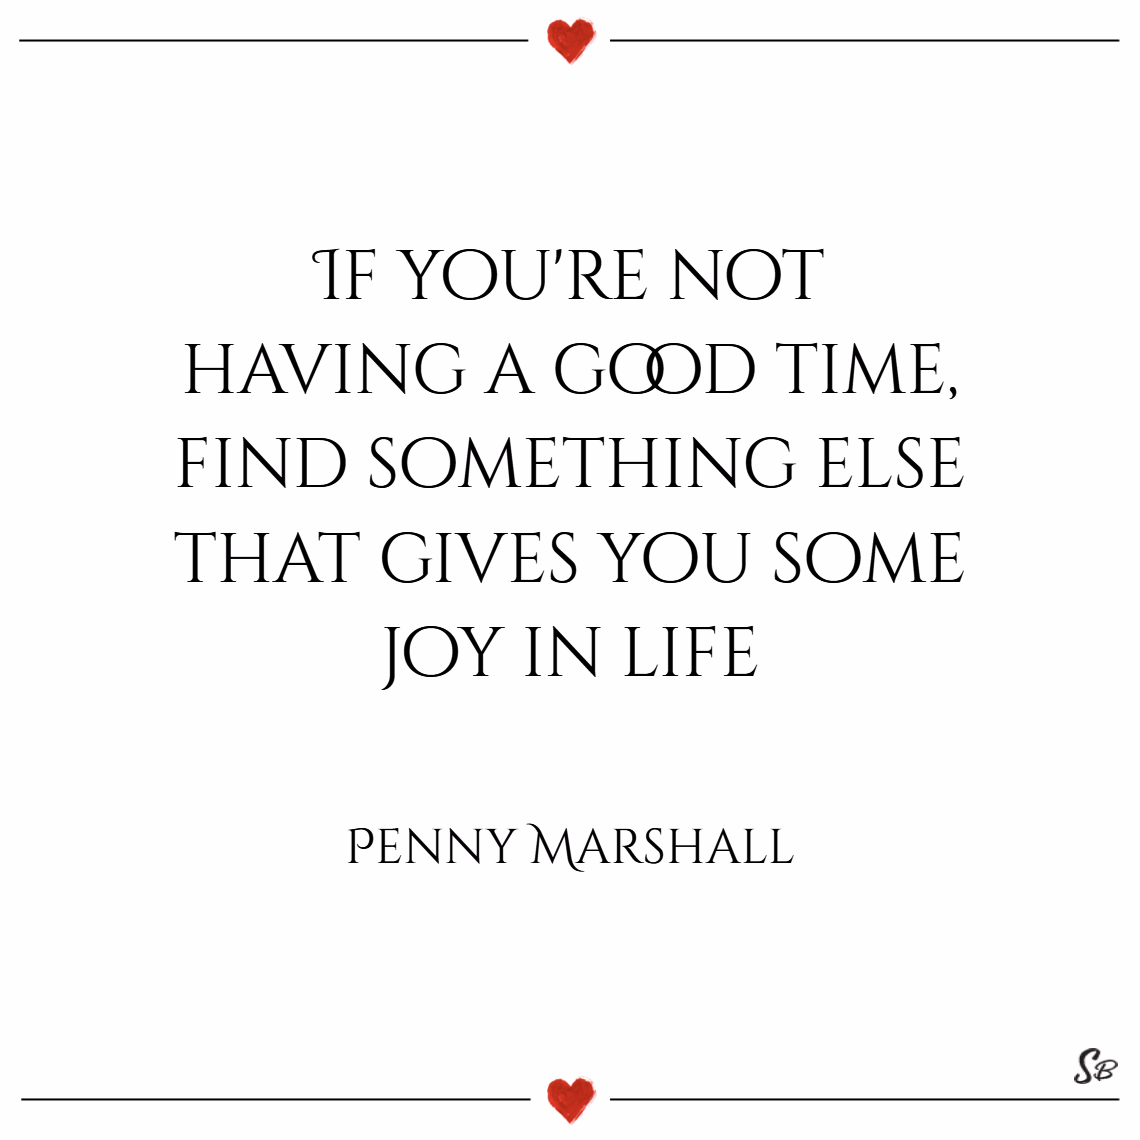 If you're not having a good time, find something else that gives you some joy in life. – penny marshall